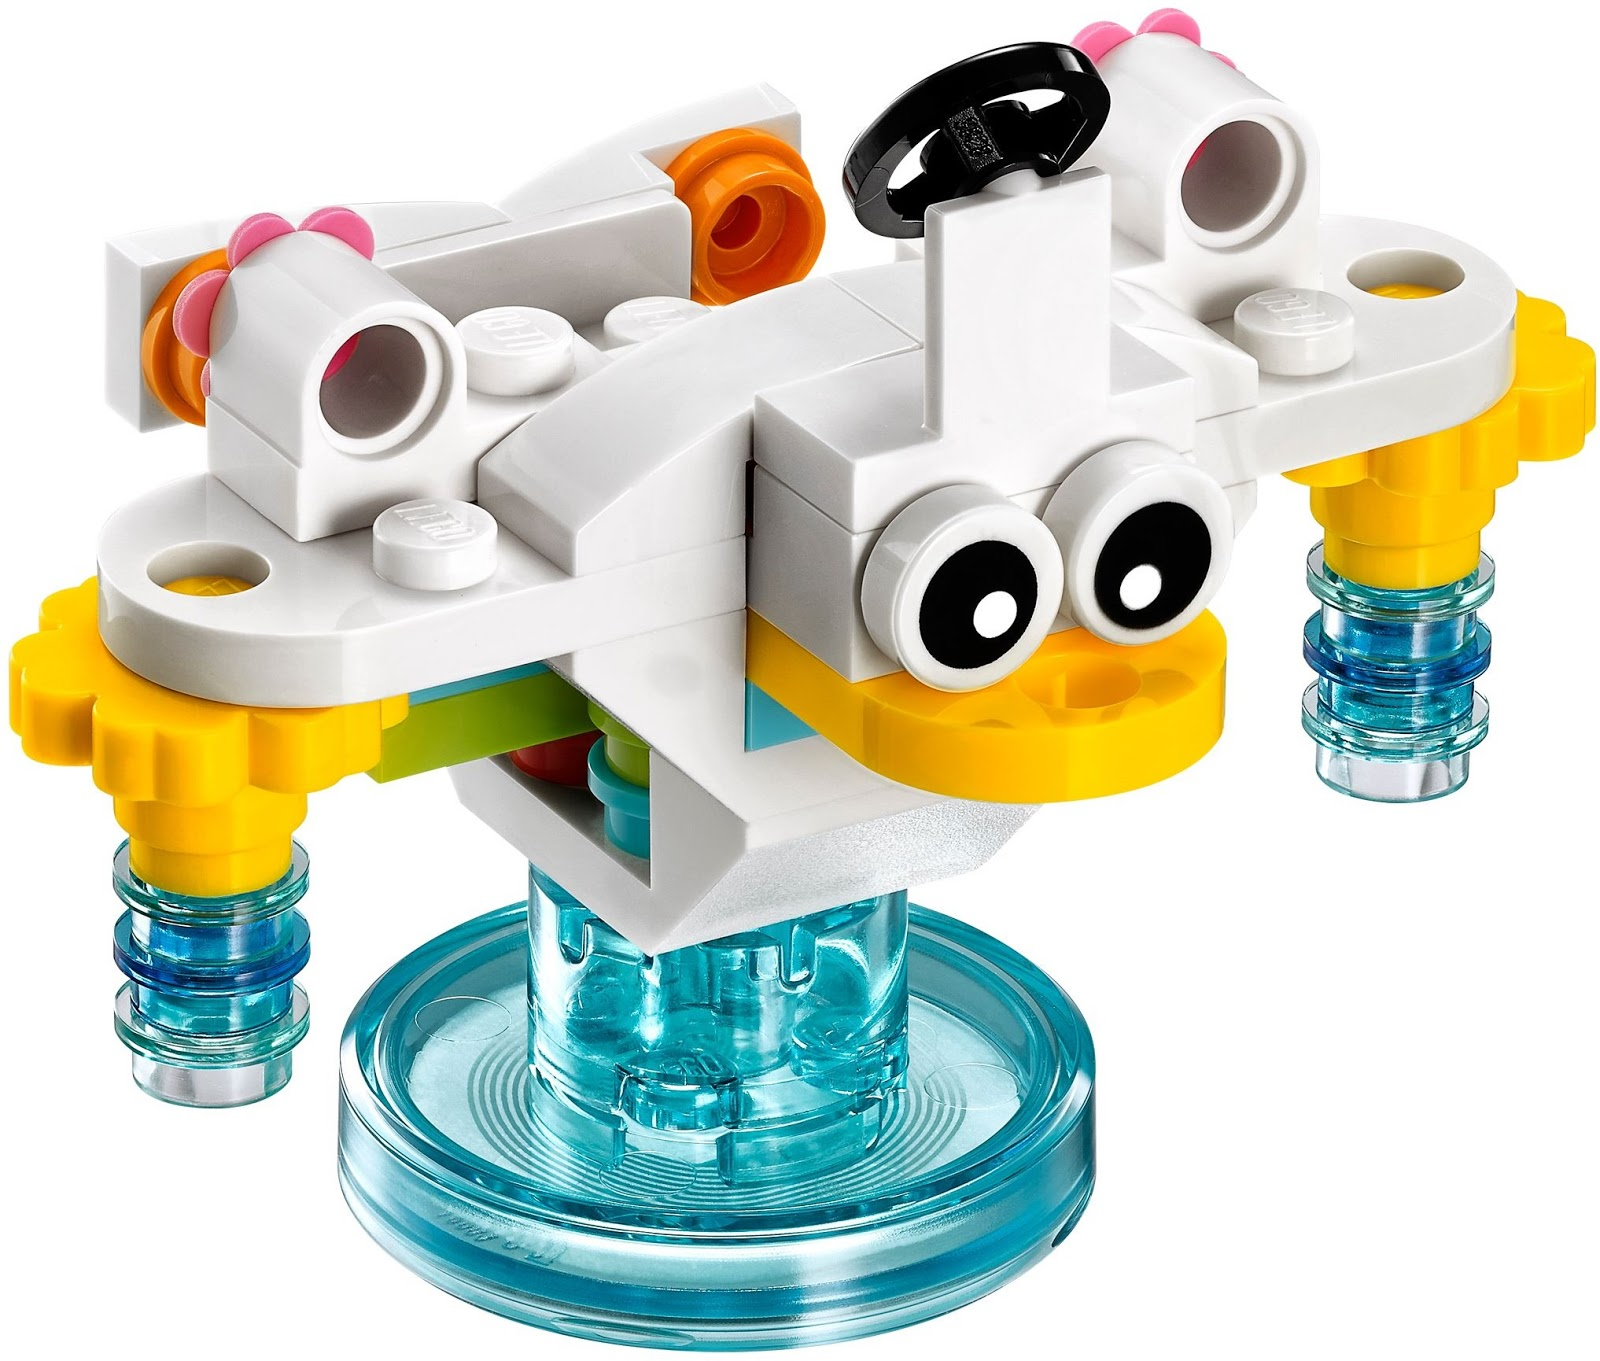 Lego Dimensions Unikitty Cloud Cuckoo Car X Stream Soaker Vehicle Chiayo Snack Energy Ballcup Mix Toy Tag Base